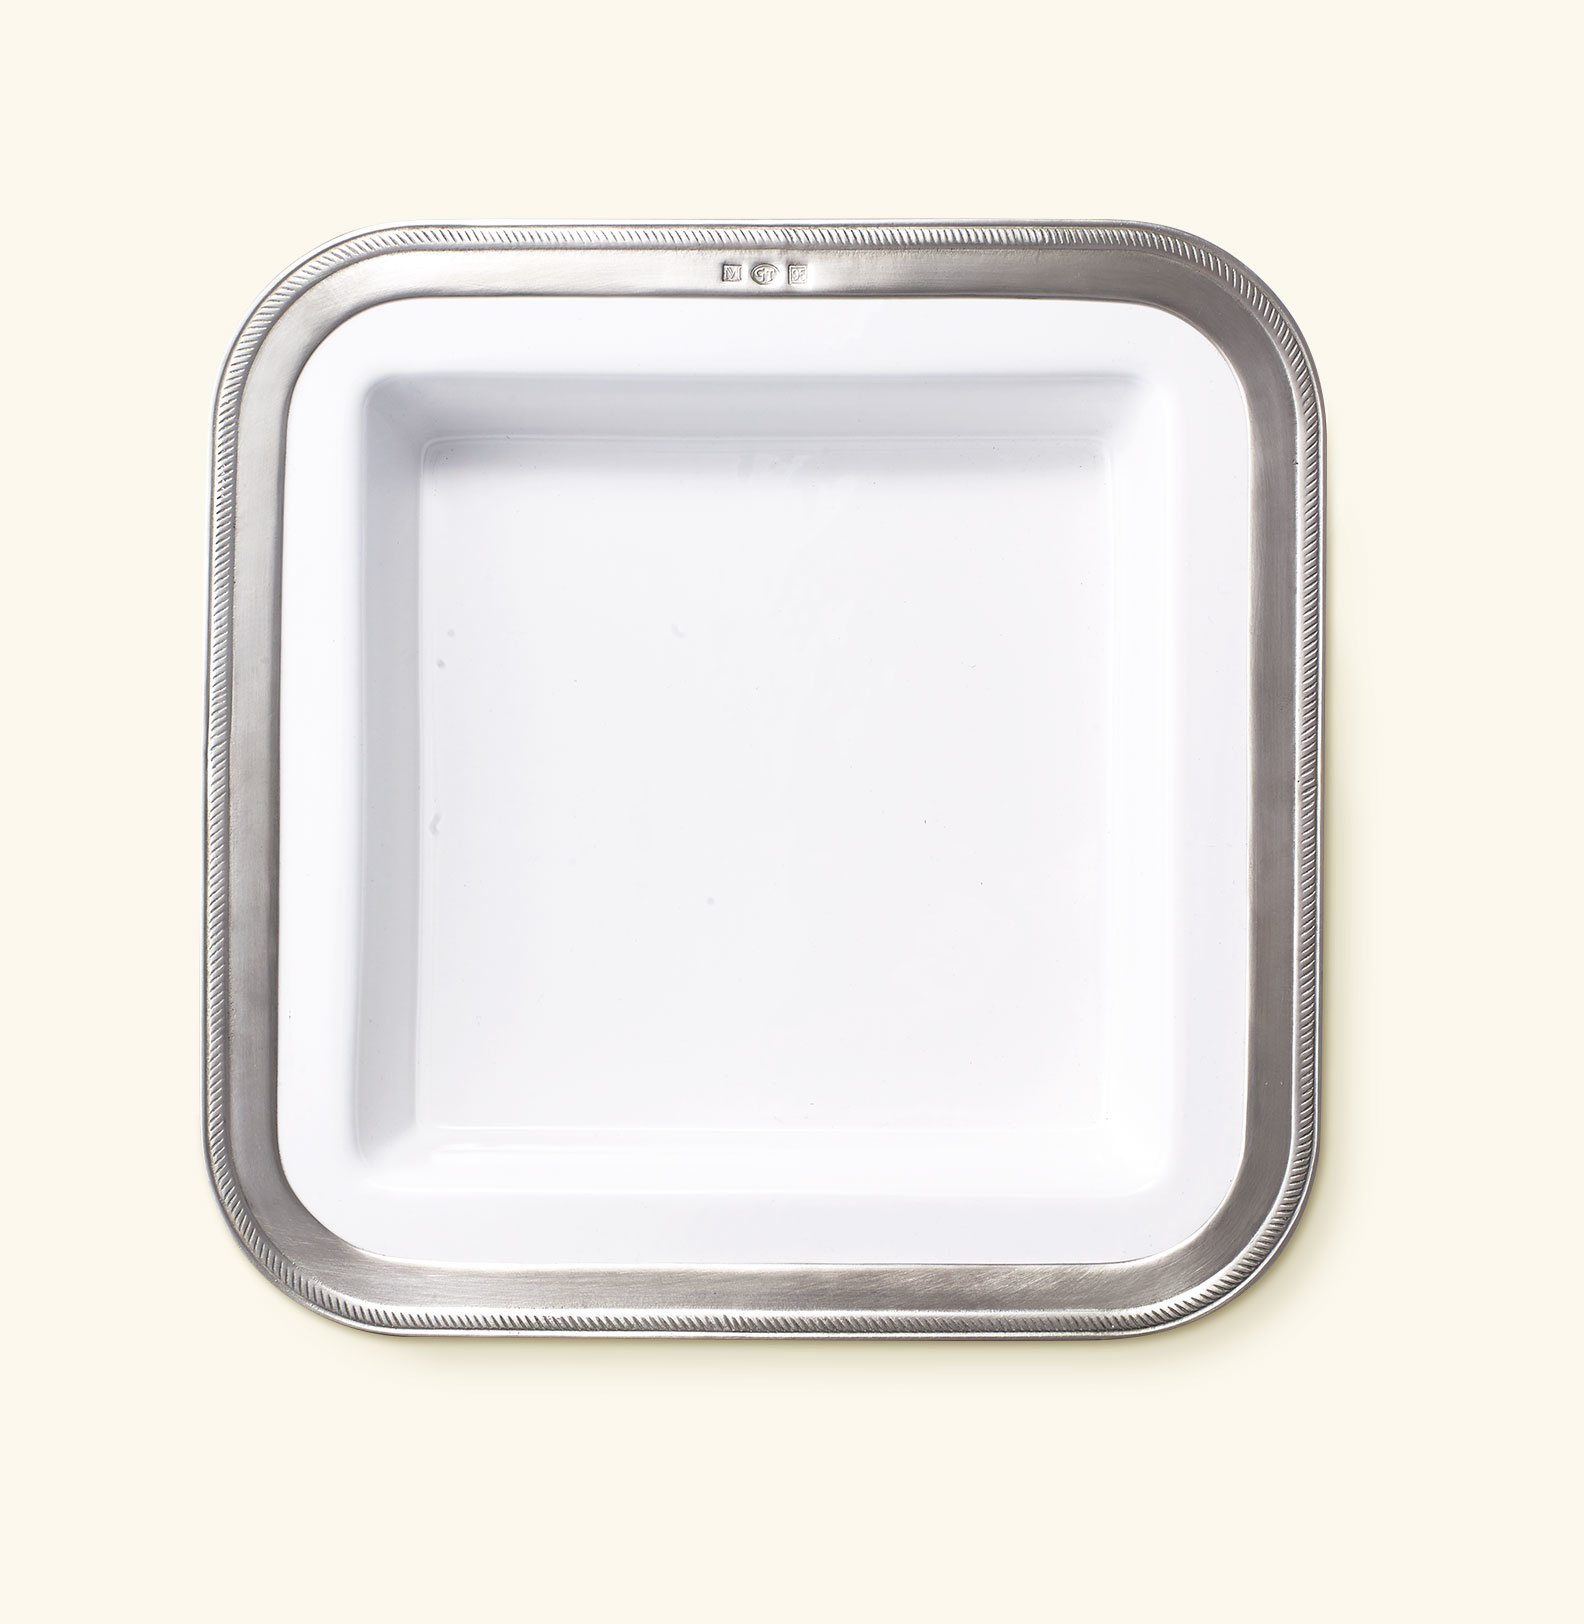 Match A877.0 Luisa Square Serving Dish